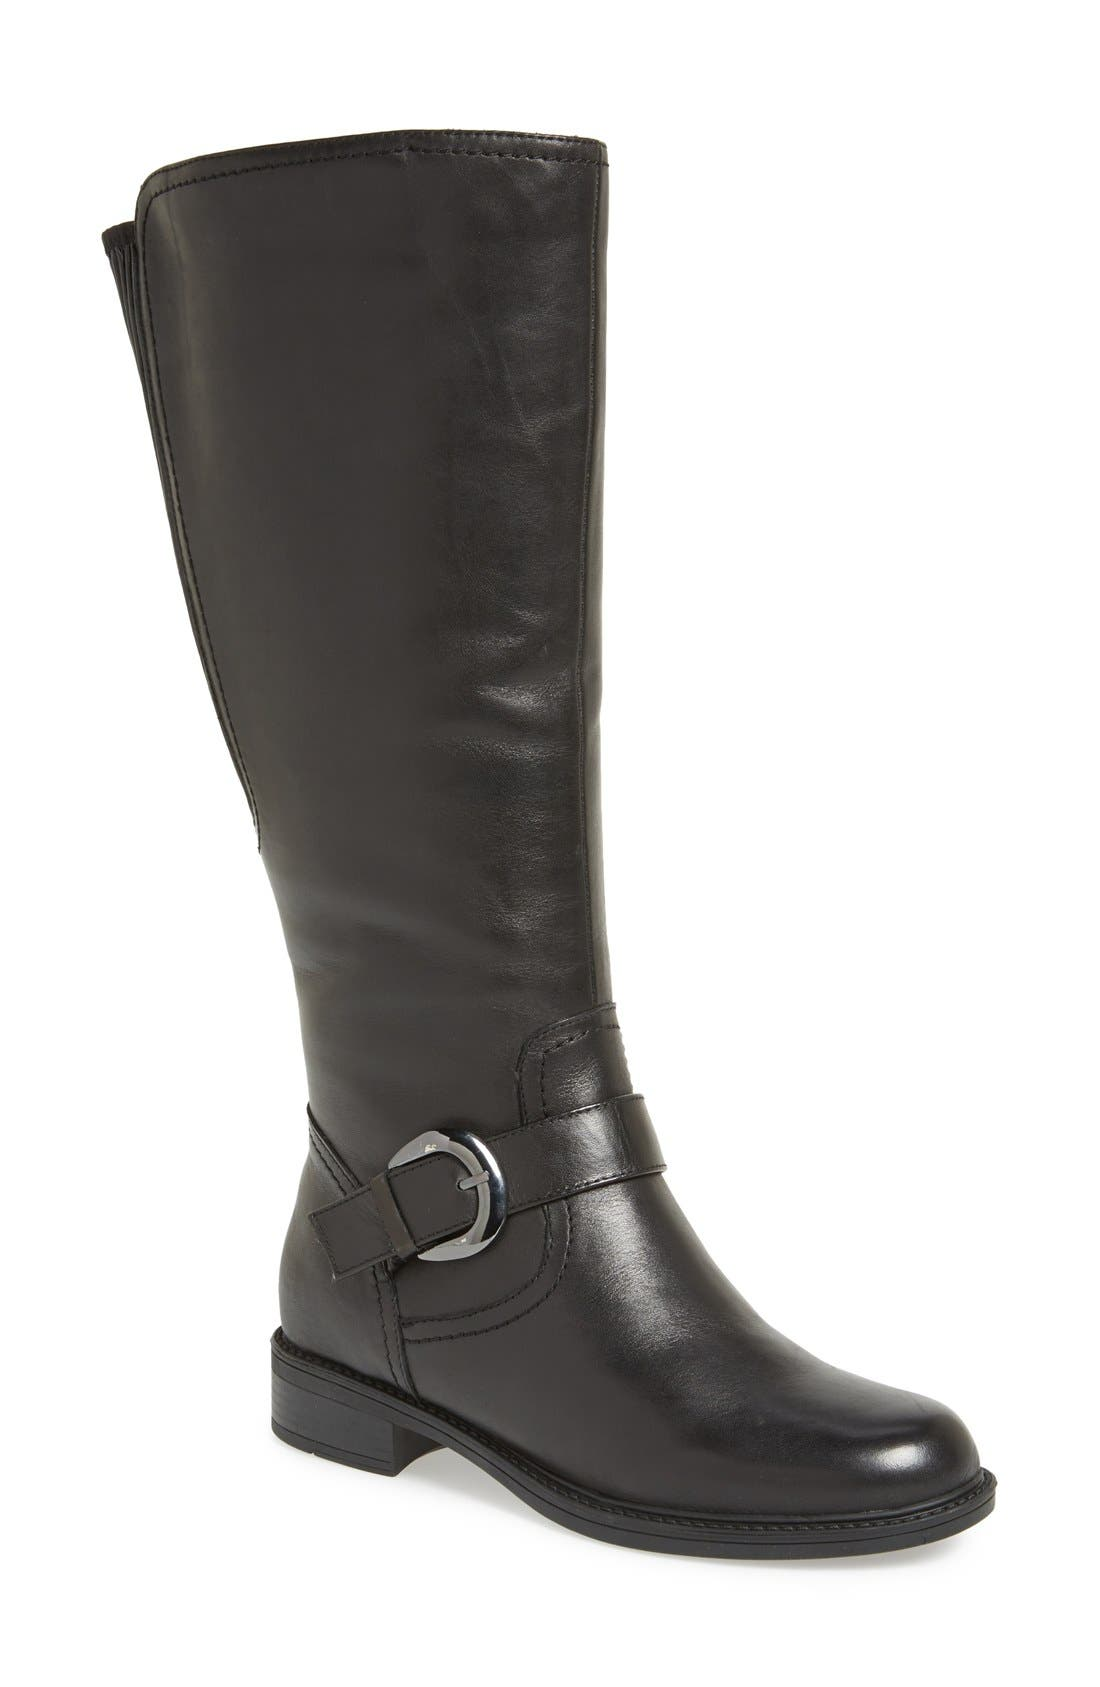 'Branson' Tall Riding Boot,                             Main thumbnail 1, color,                             001